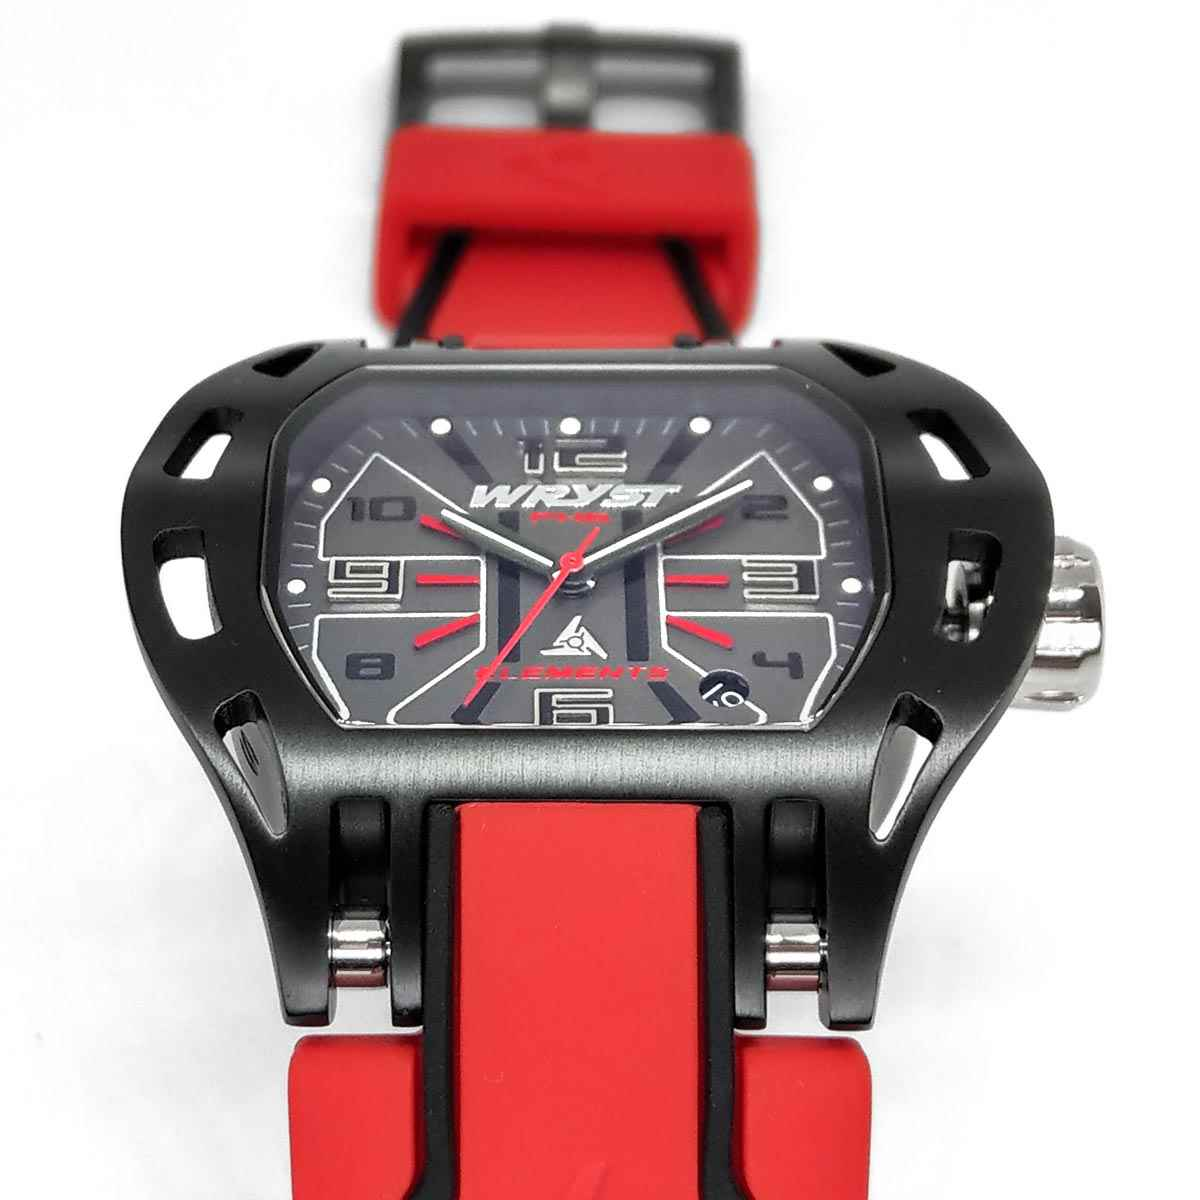 Wryst black sports watch PH6 red